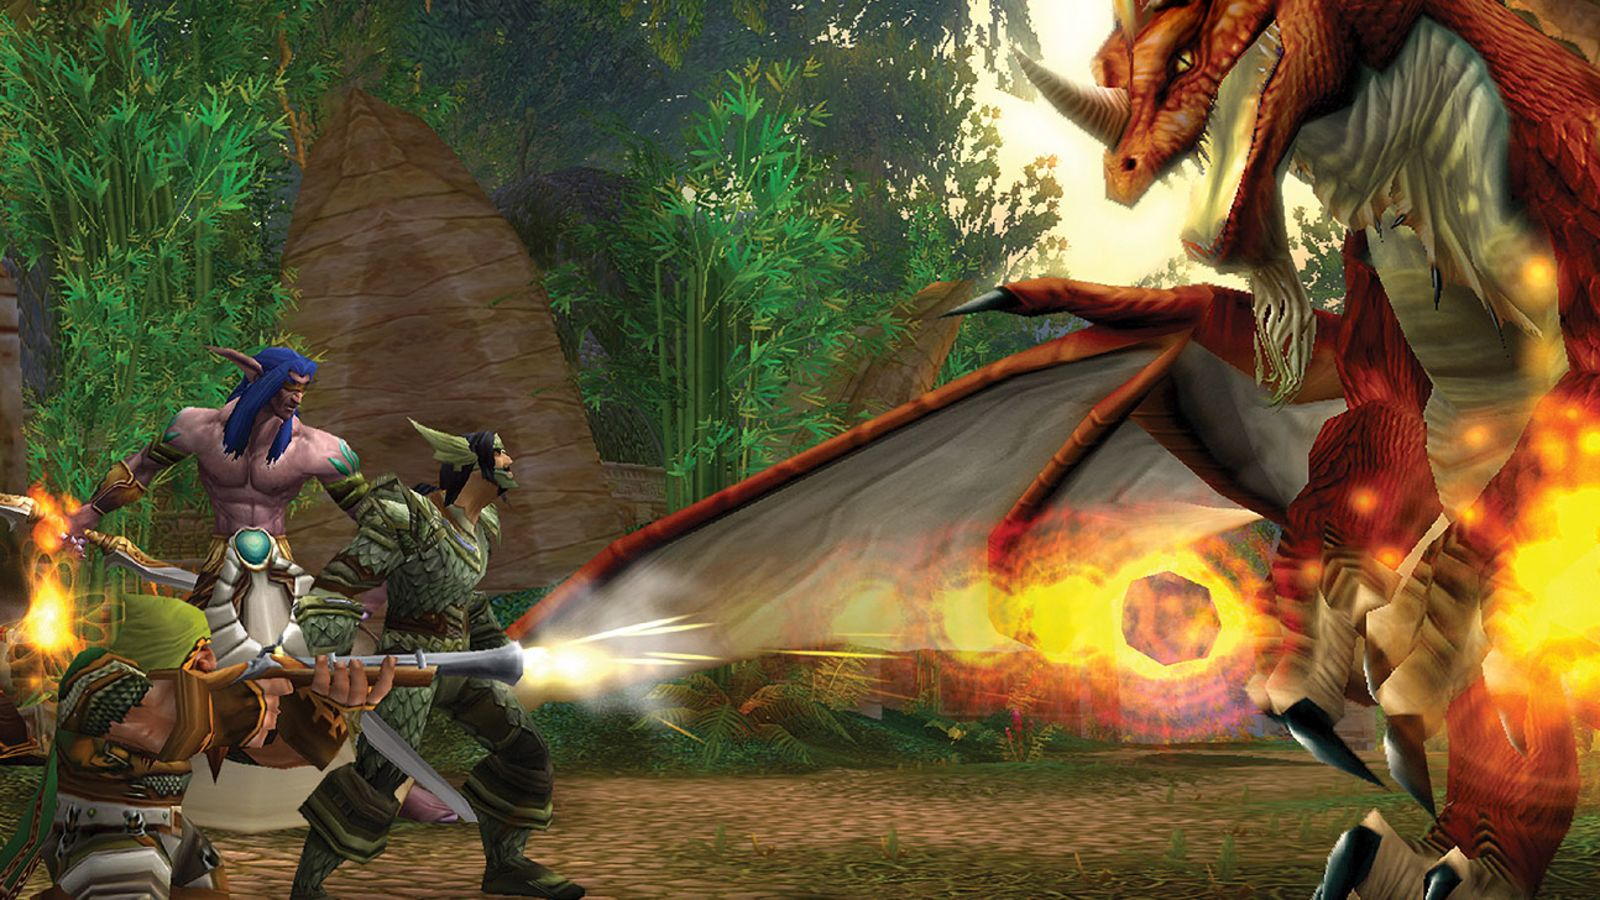 PSA: You can install the World of Warcraft Classic demo now before